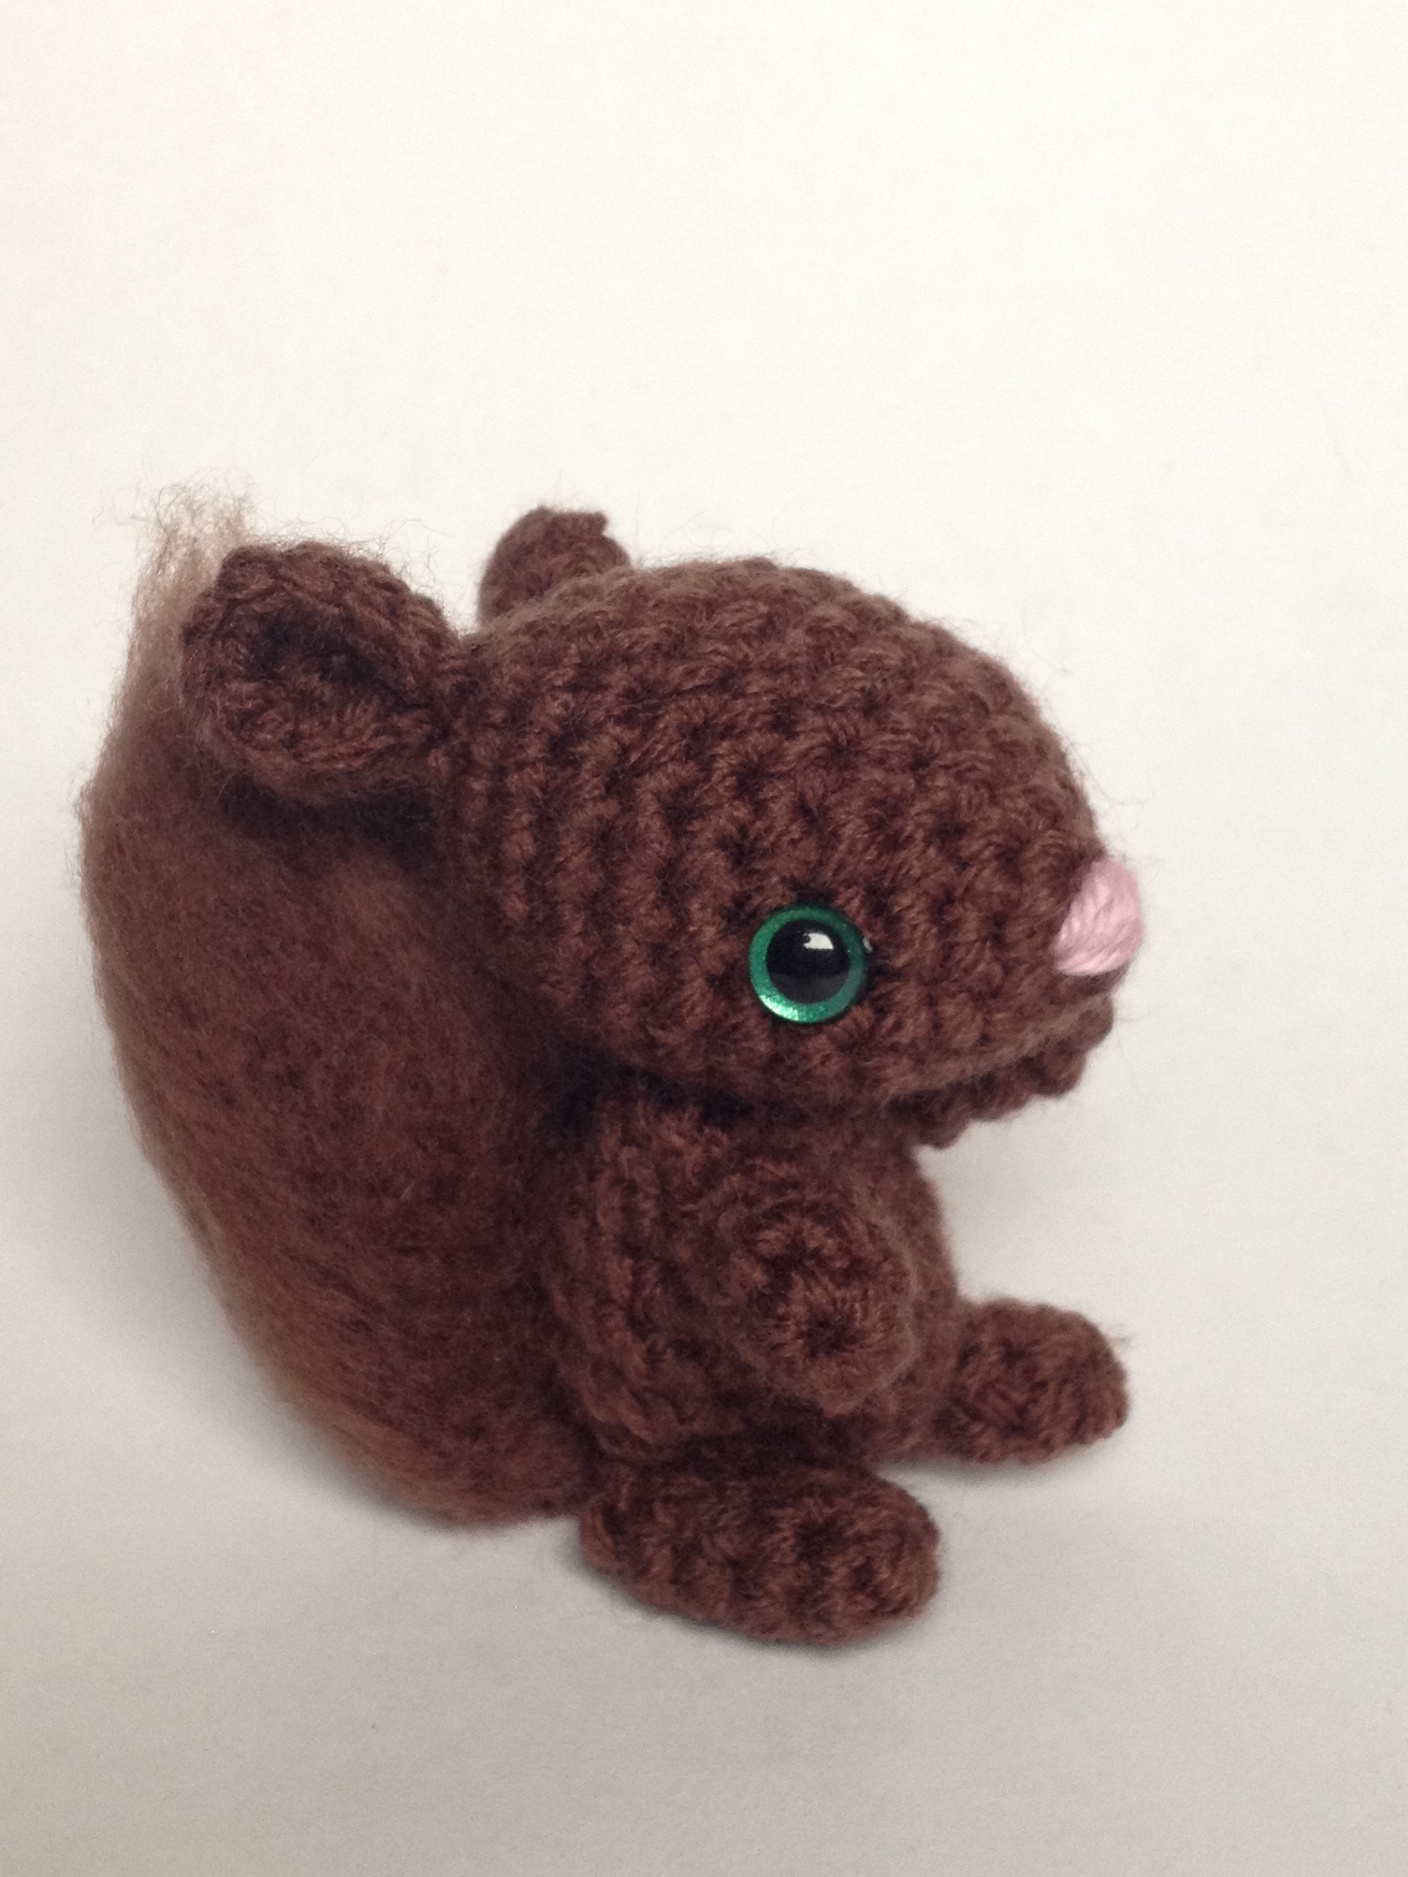 Squirrel Amigurumi Crochet Pattern - The Magic Loop | 1877x1408